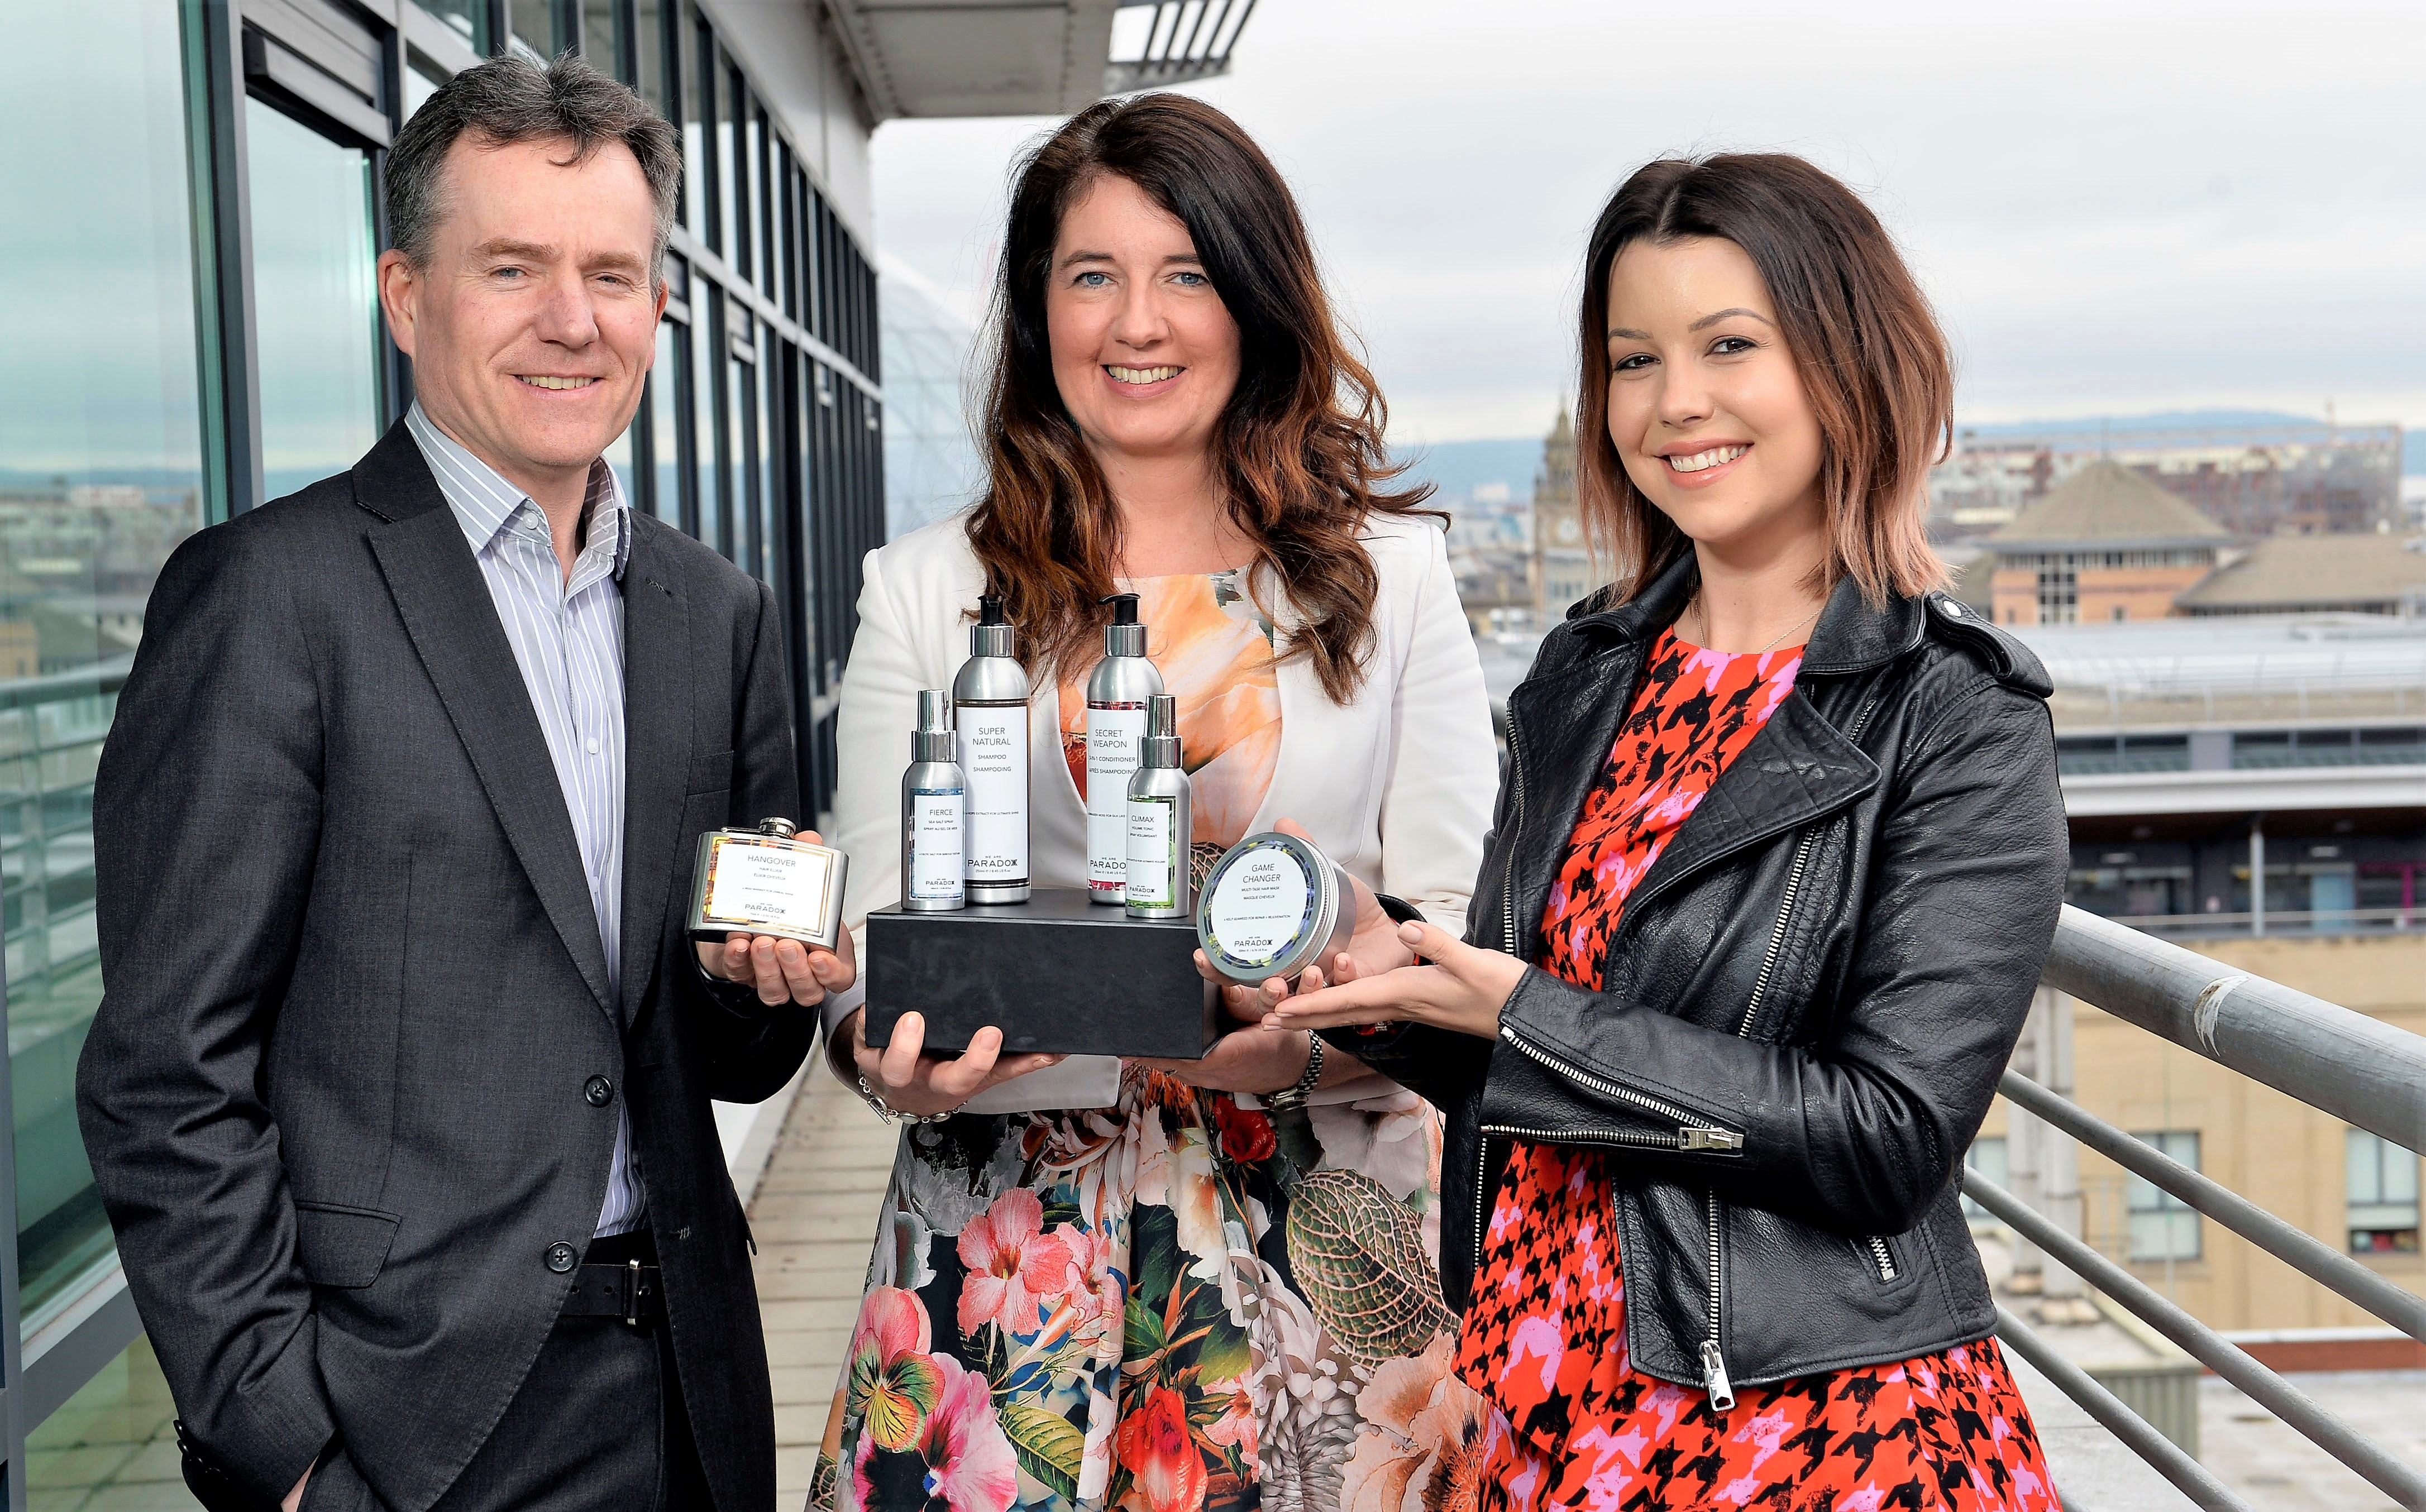 Fast Growing Companies Benefit from Launch of New Business Angel Investment Initiative in Northern Ireland